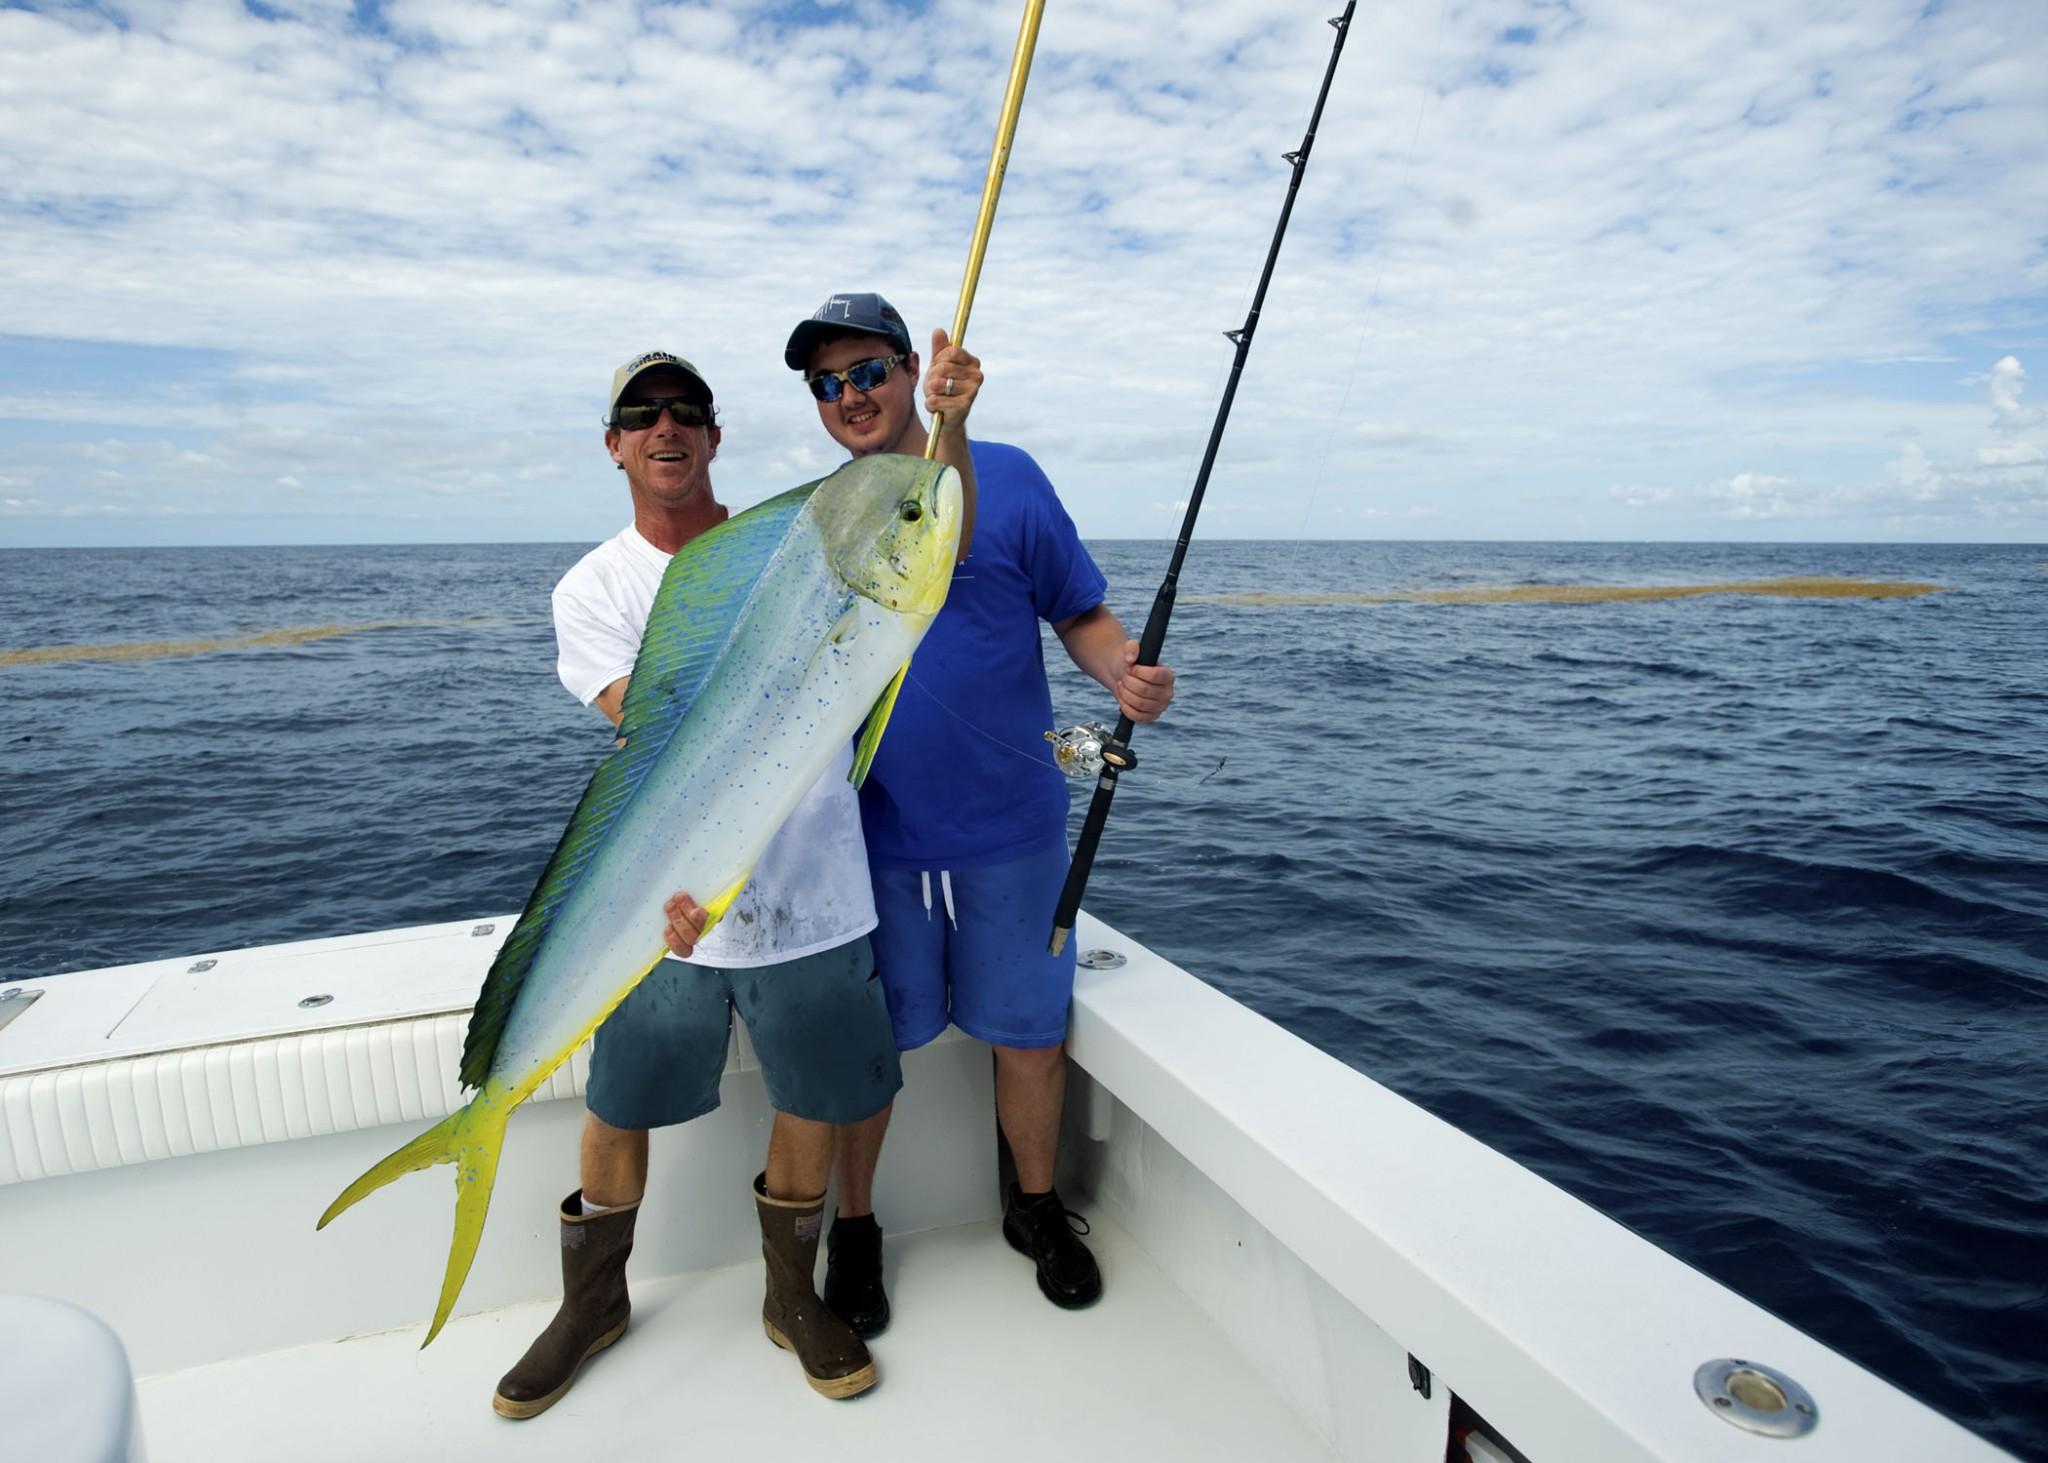 Did you know you can put a mahi in a saltwater brine to keep their color? Learn something new everyday!